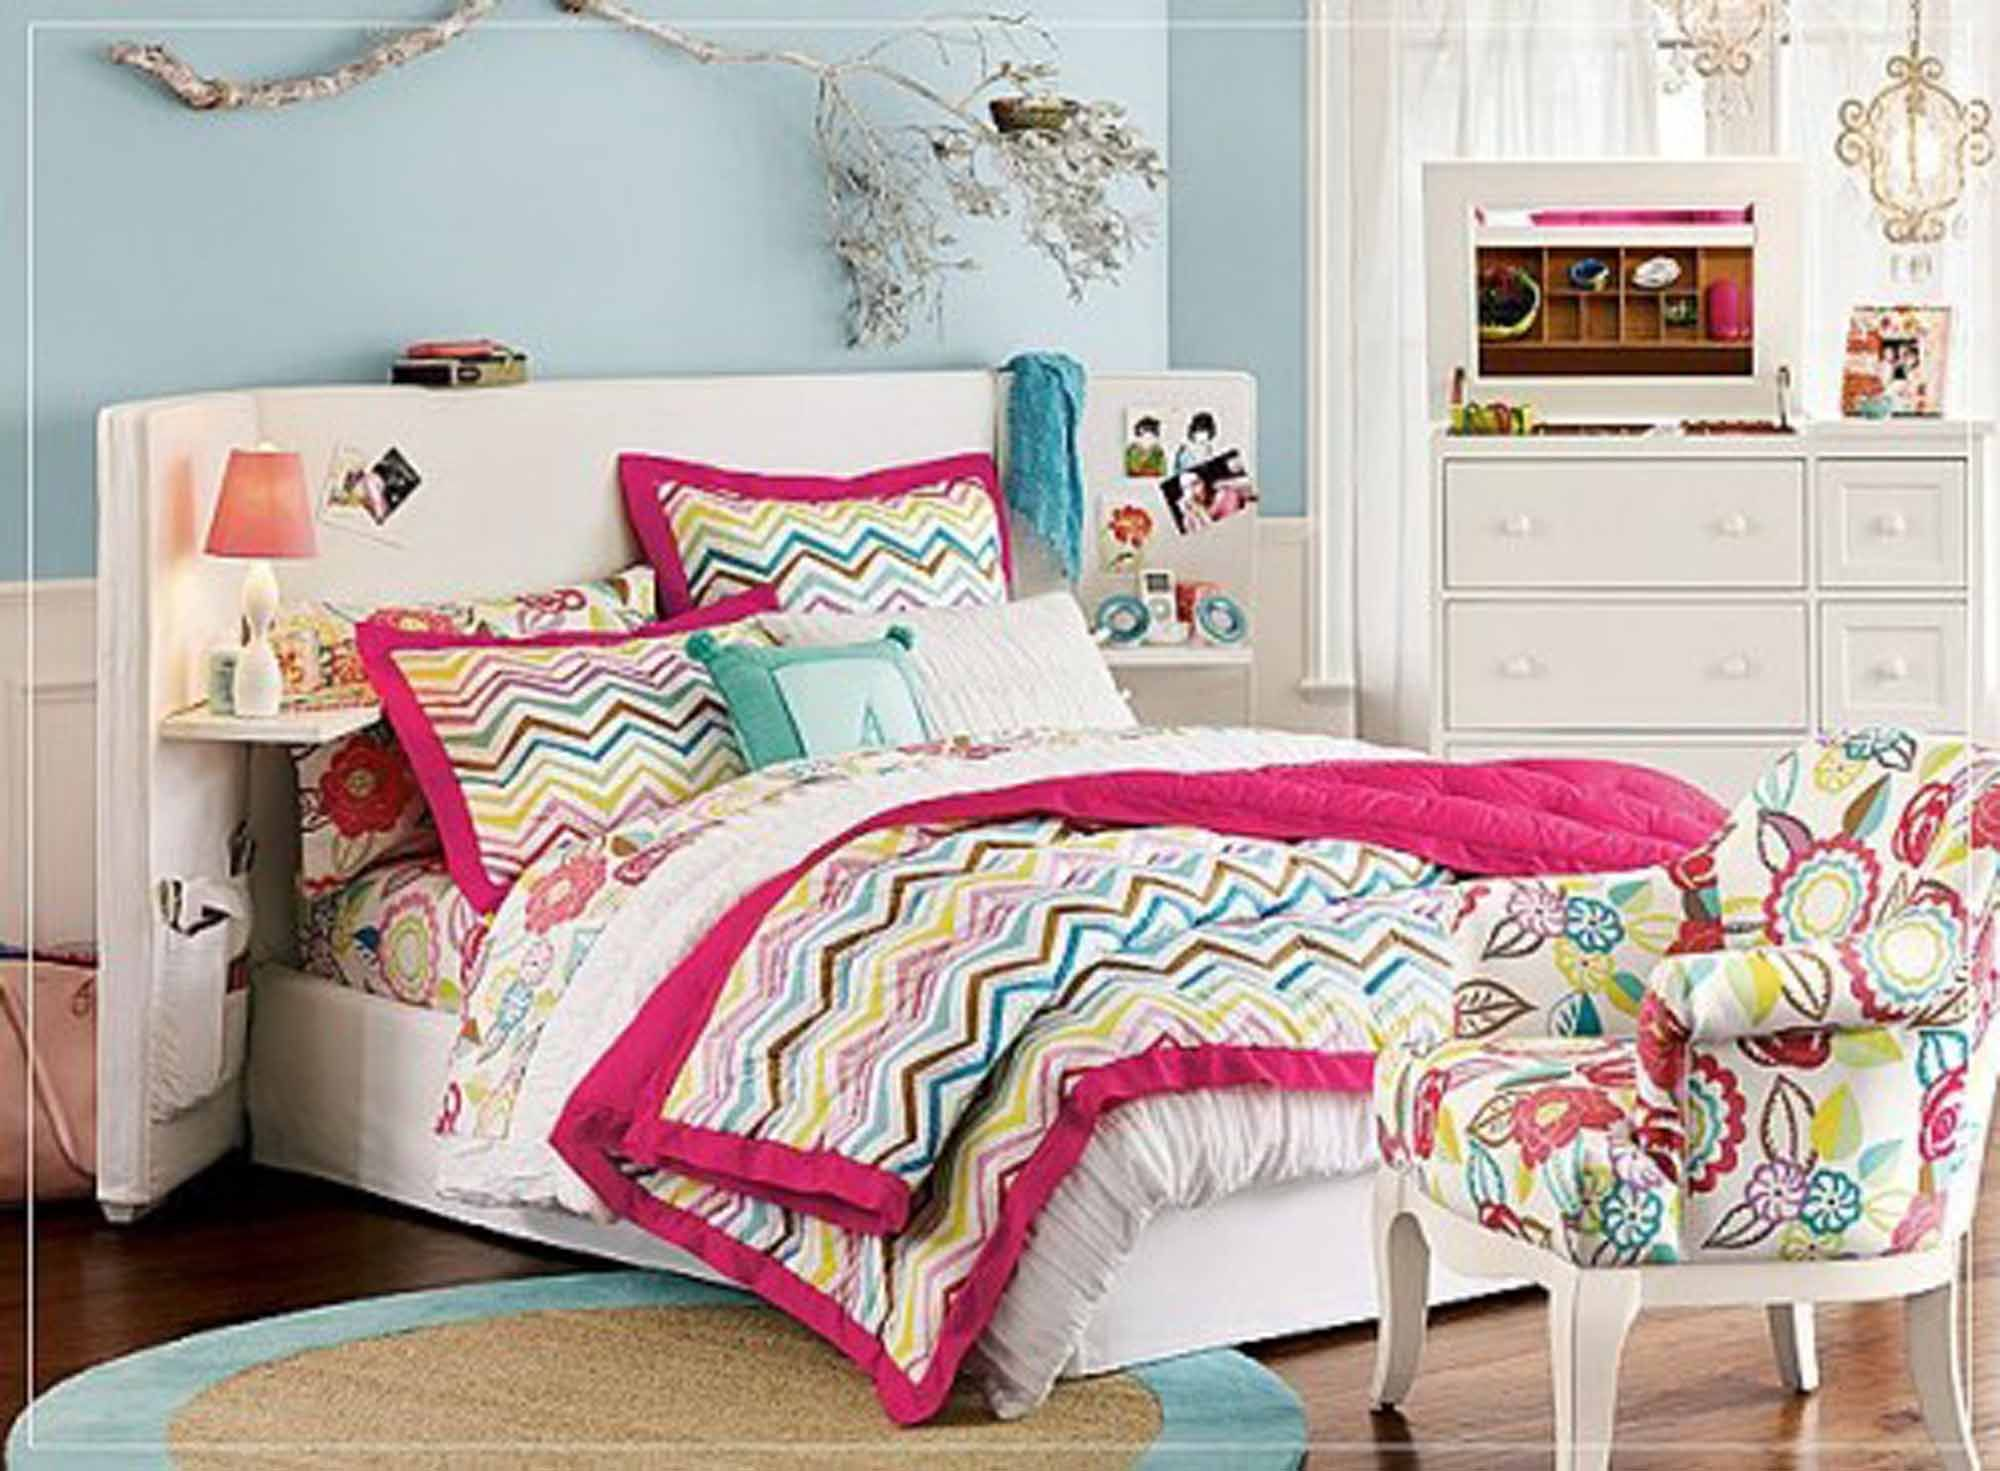 Teens Bedroom, Remarkable Teenage Girl Bedroom Ideas With Girls Bedroom And  Lovely Headboard Design Also Colourful Bed With Colourful Arm Chair And  Full ...